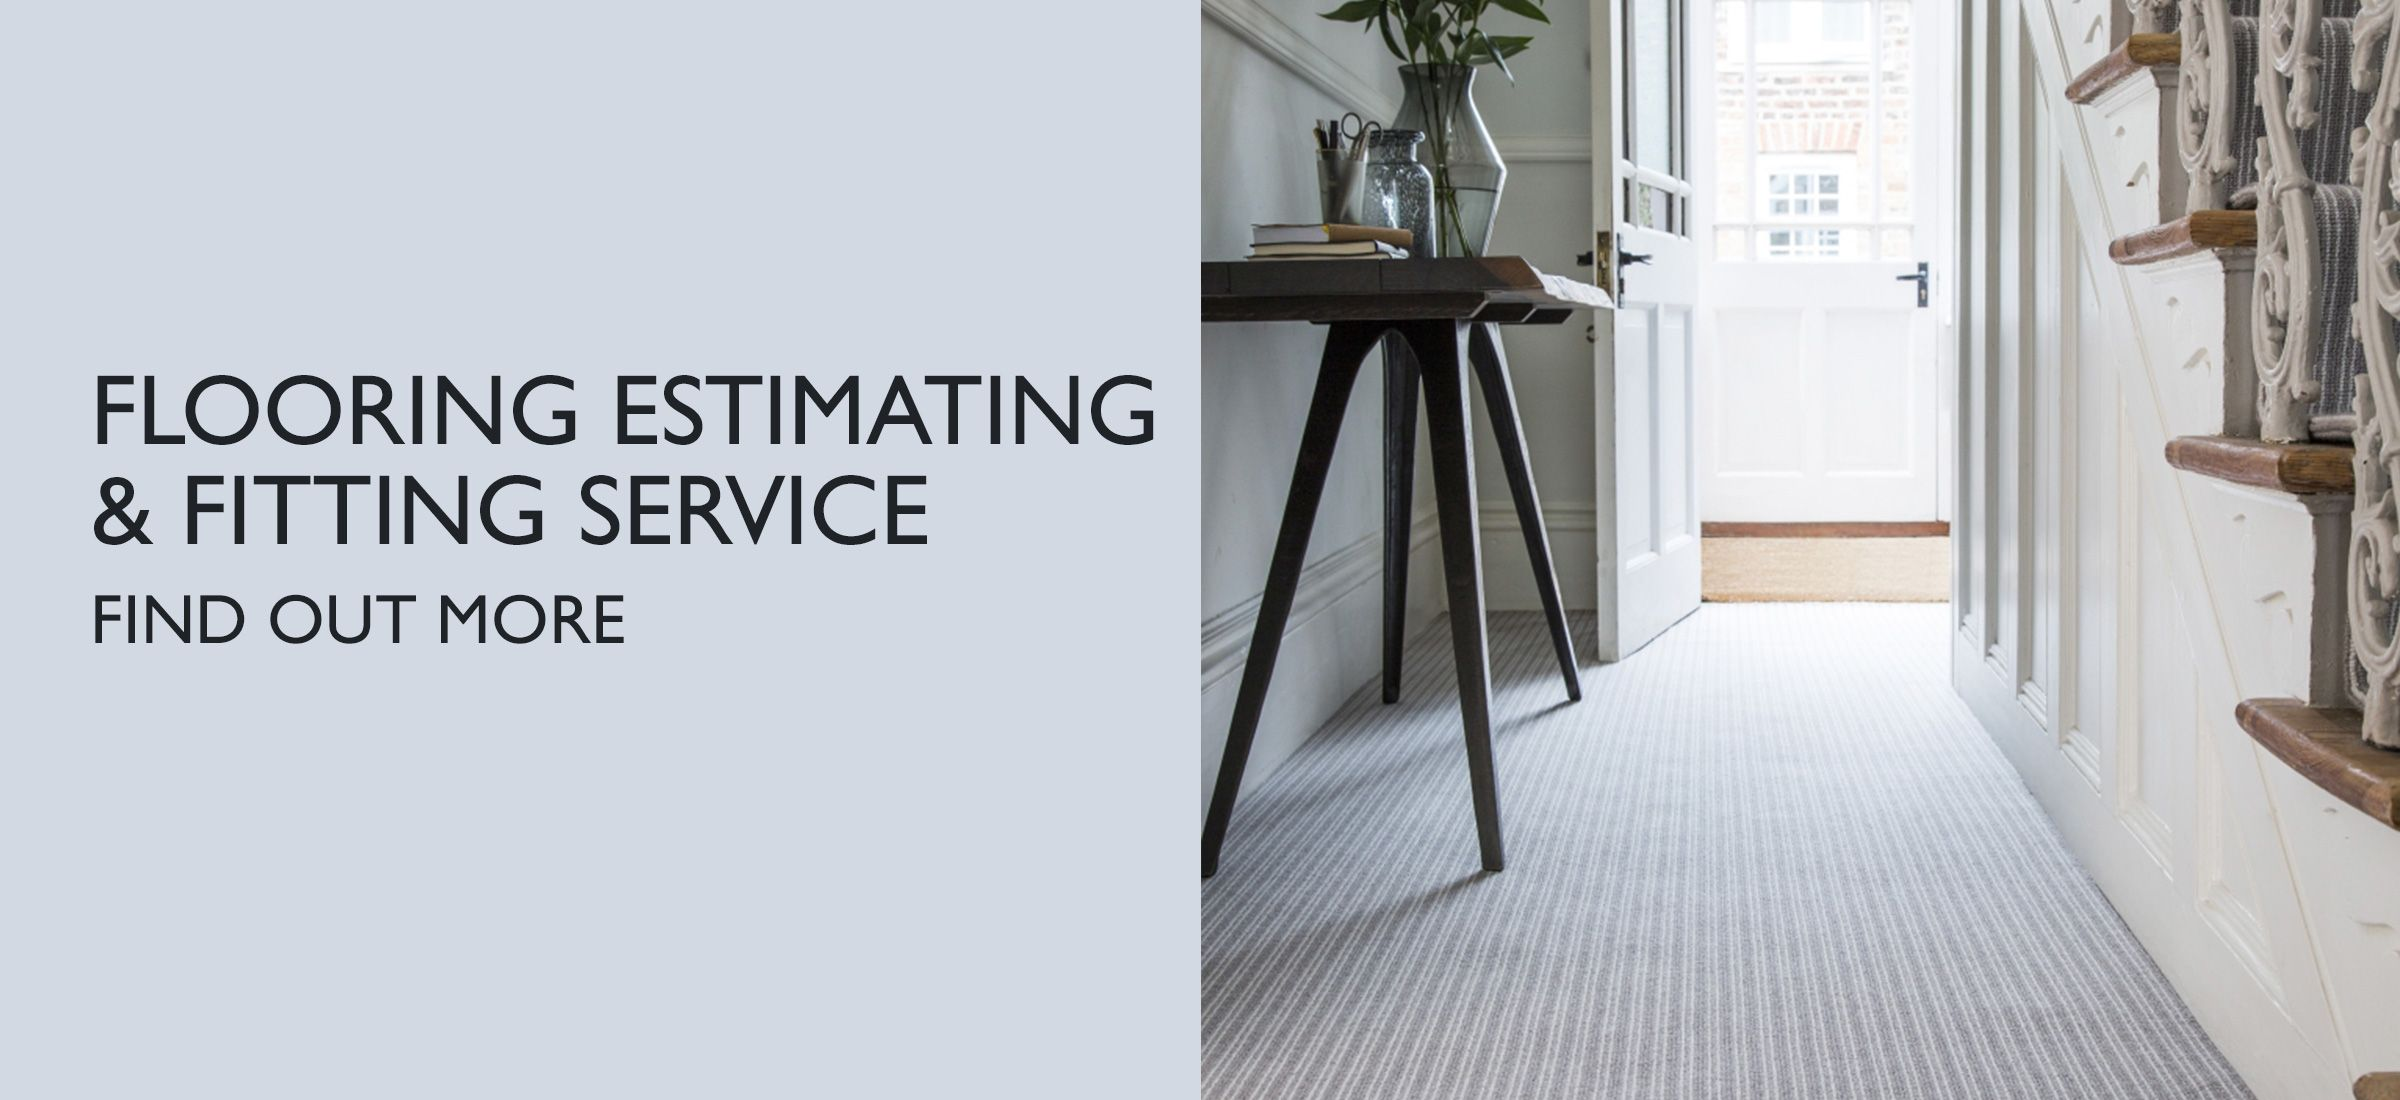 FLOORING ESTIMATING & FITTING SERVICE